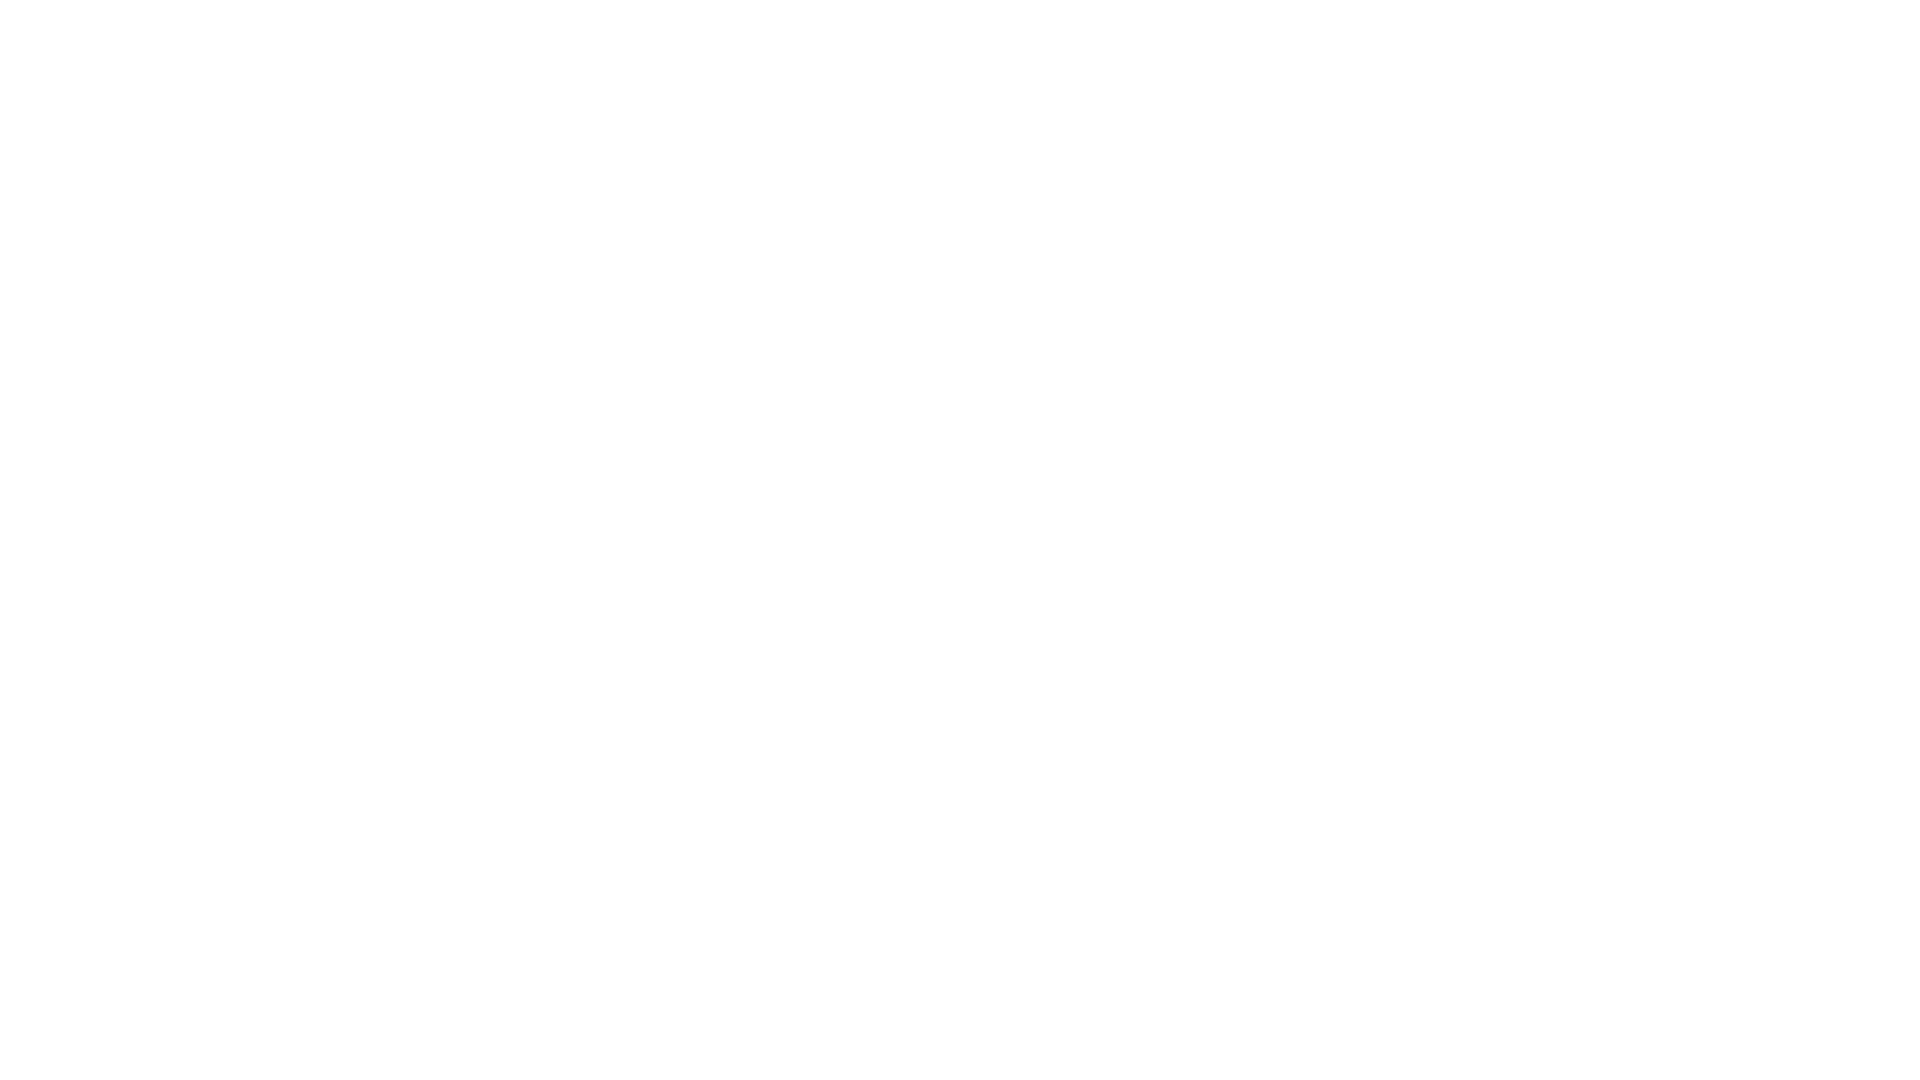 agricopter logo final 1920 x 1080 white